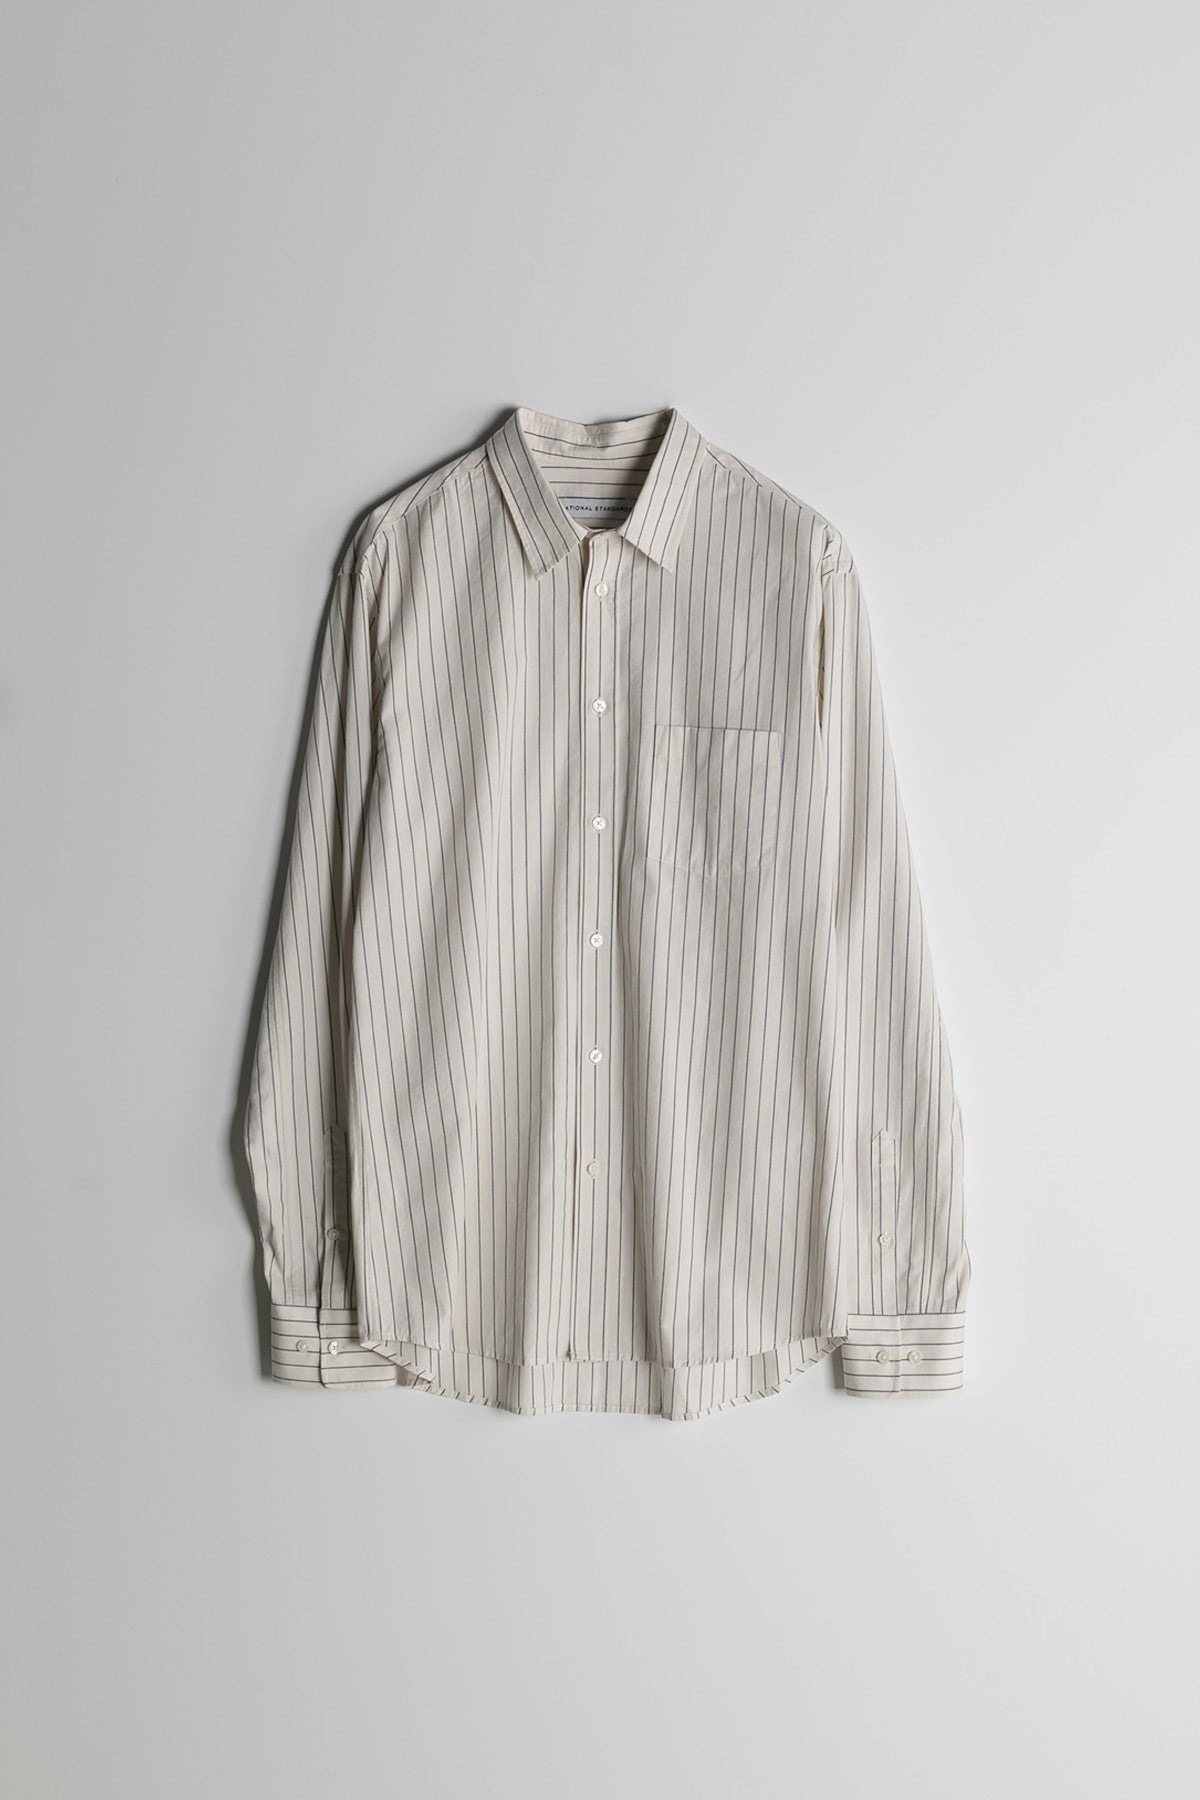 Baseball Stripe in Off White and Blue 008